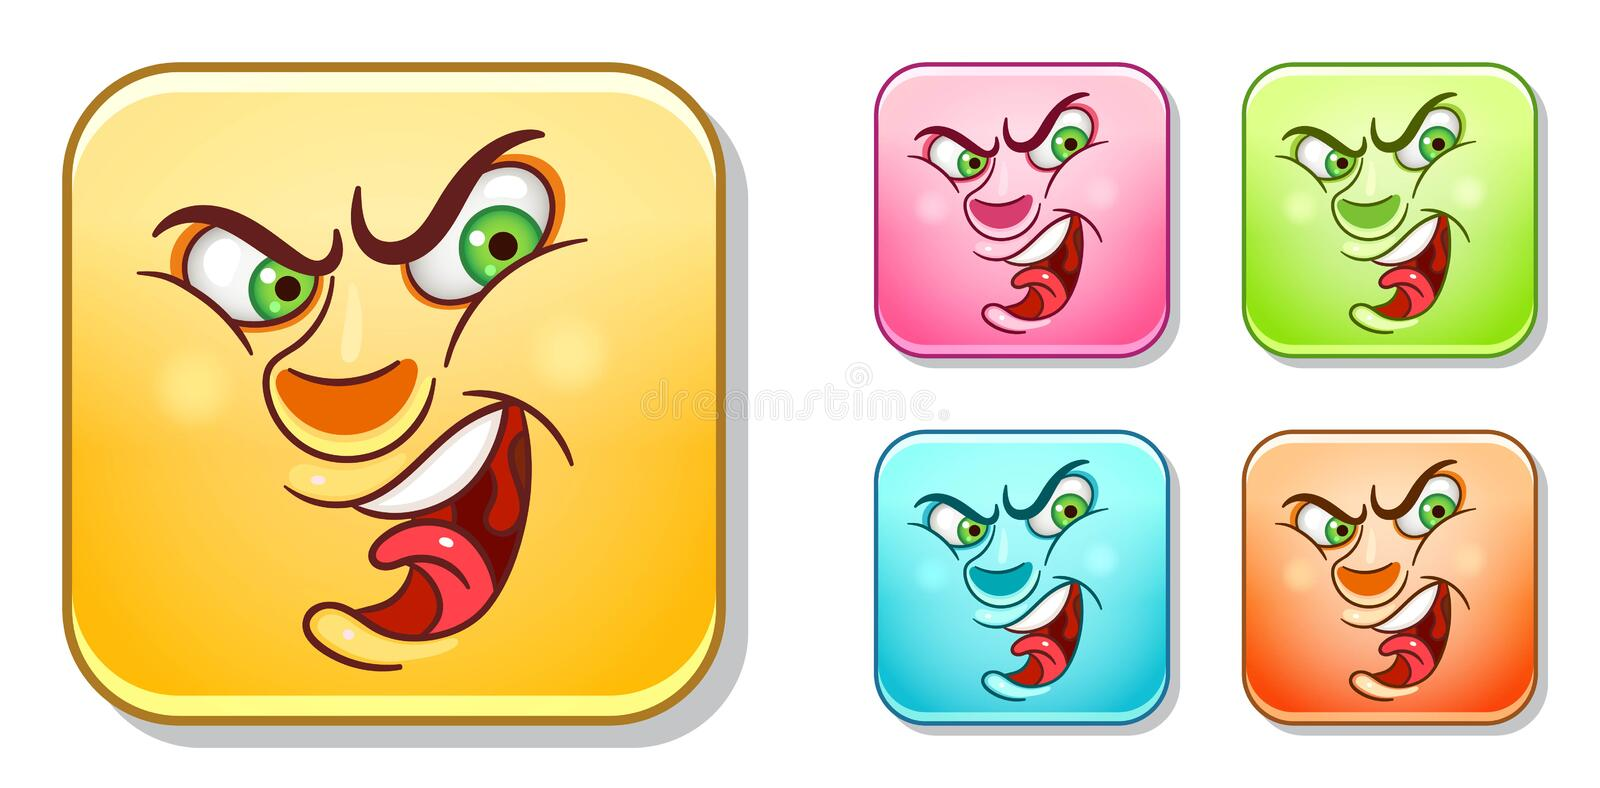 Angry Emoticons collection stock image